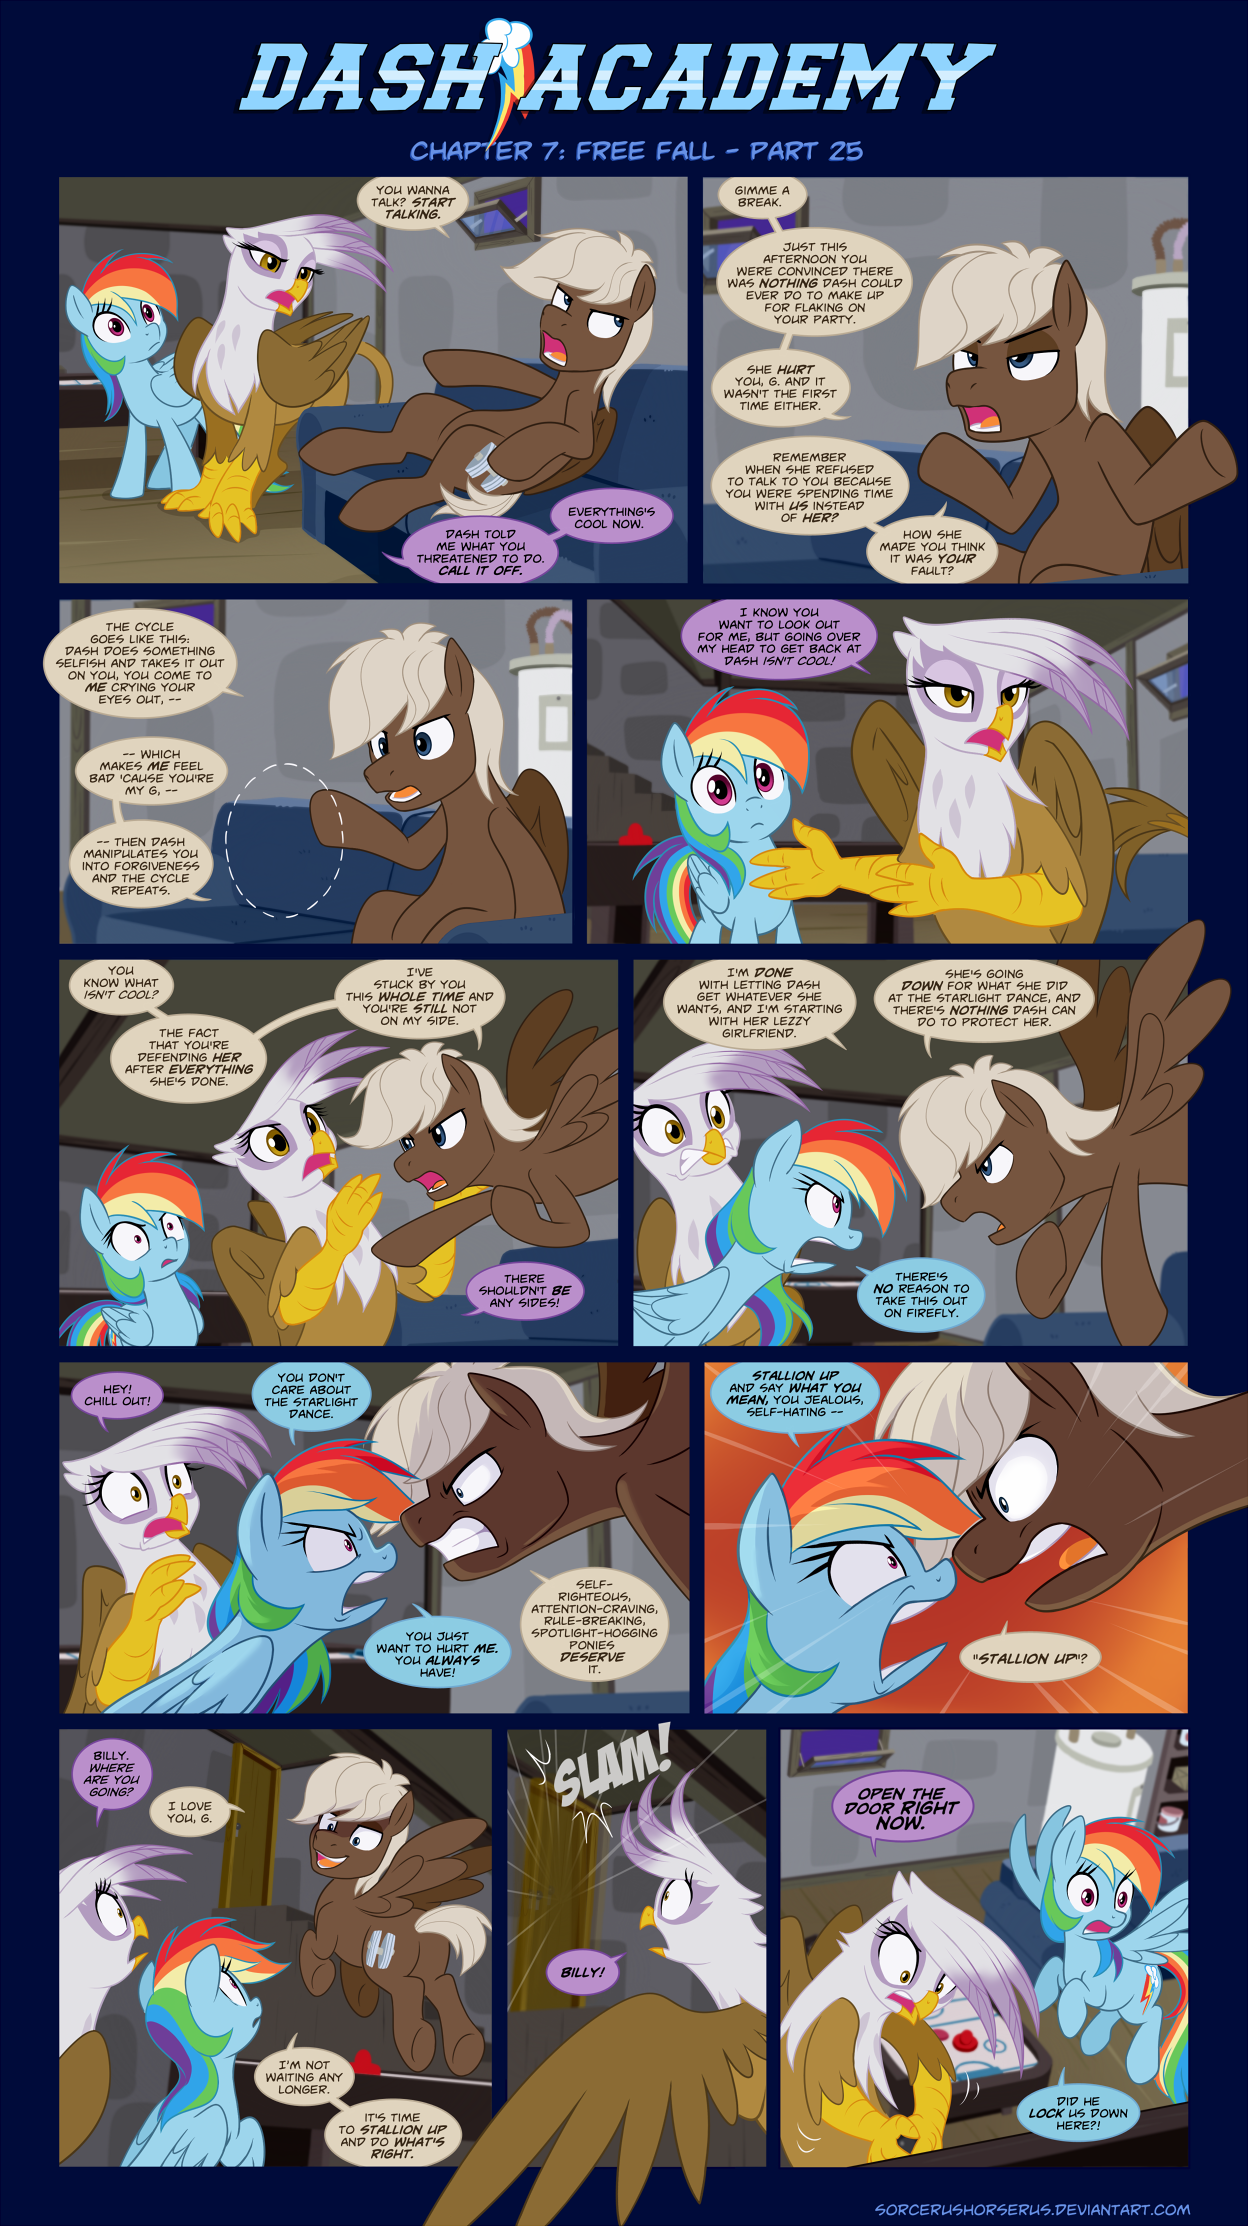 Dash Academy Chapter 7 - Free Fall #25 by SorcerusHorserus